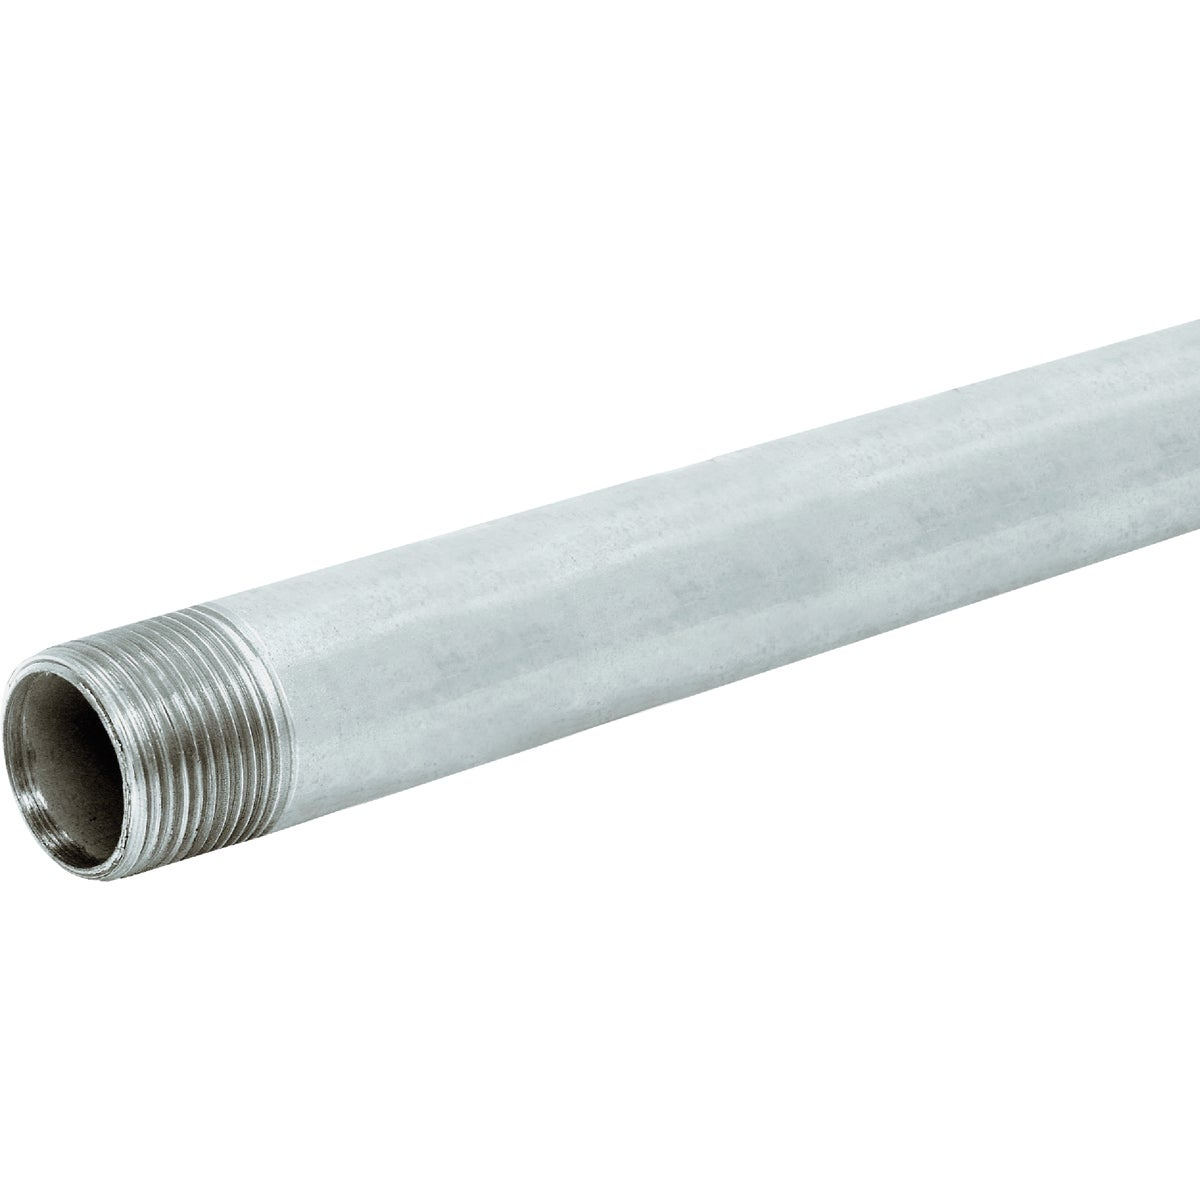 "1/2""X10' GALV PIPE - 10424 by Southland Pipe"